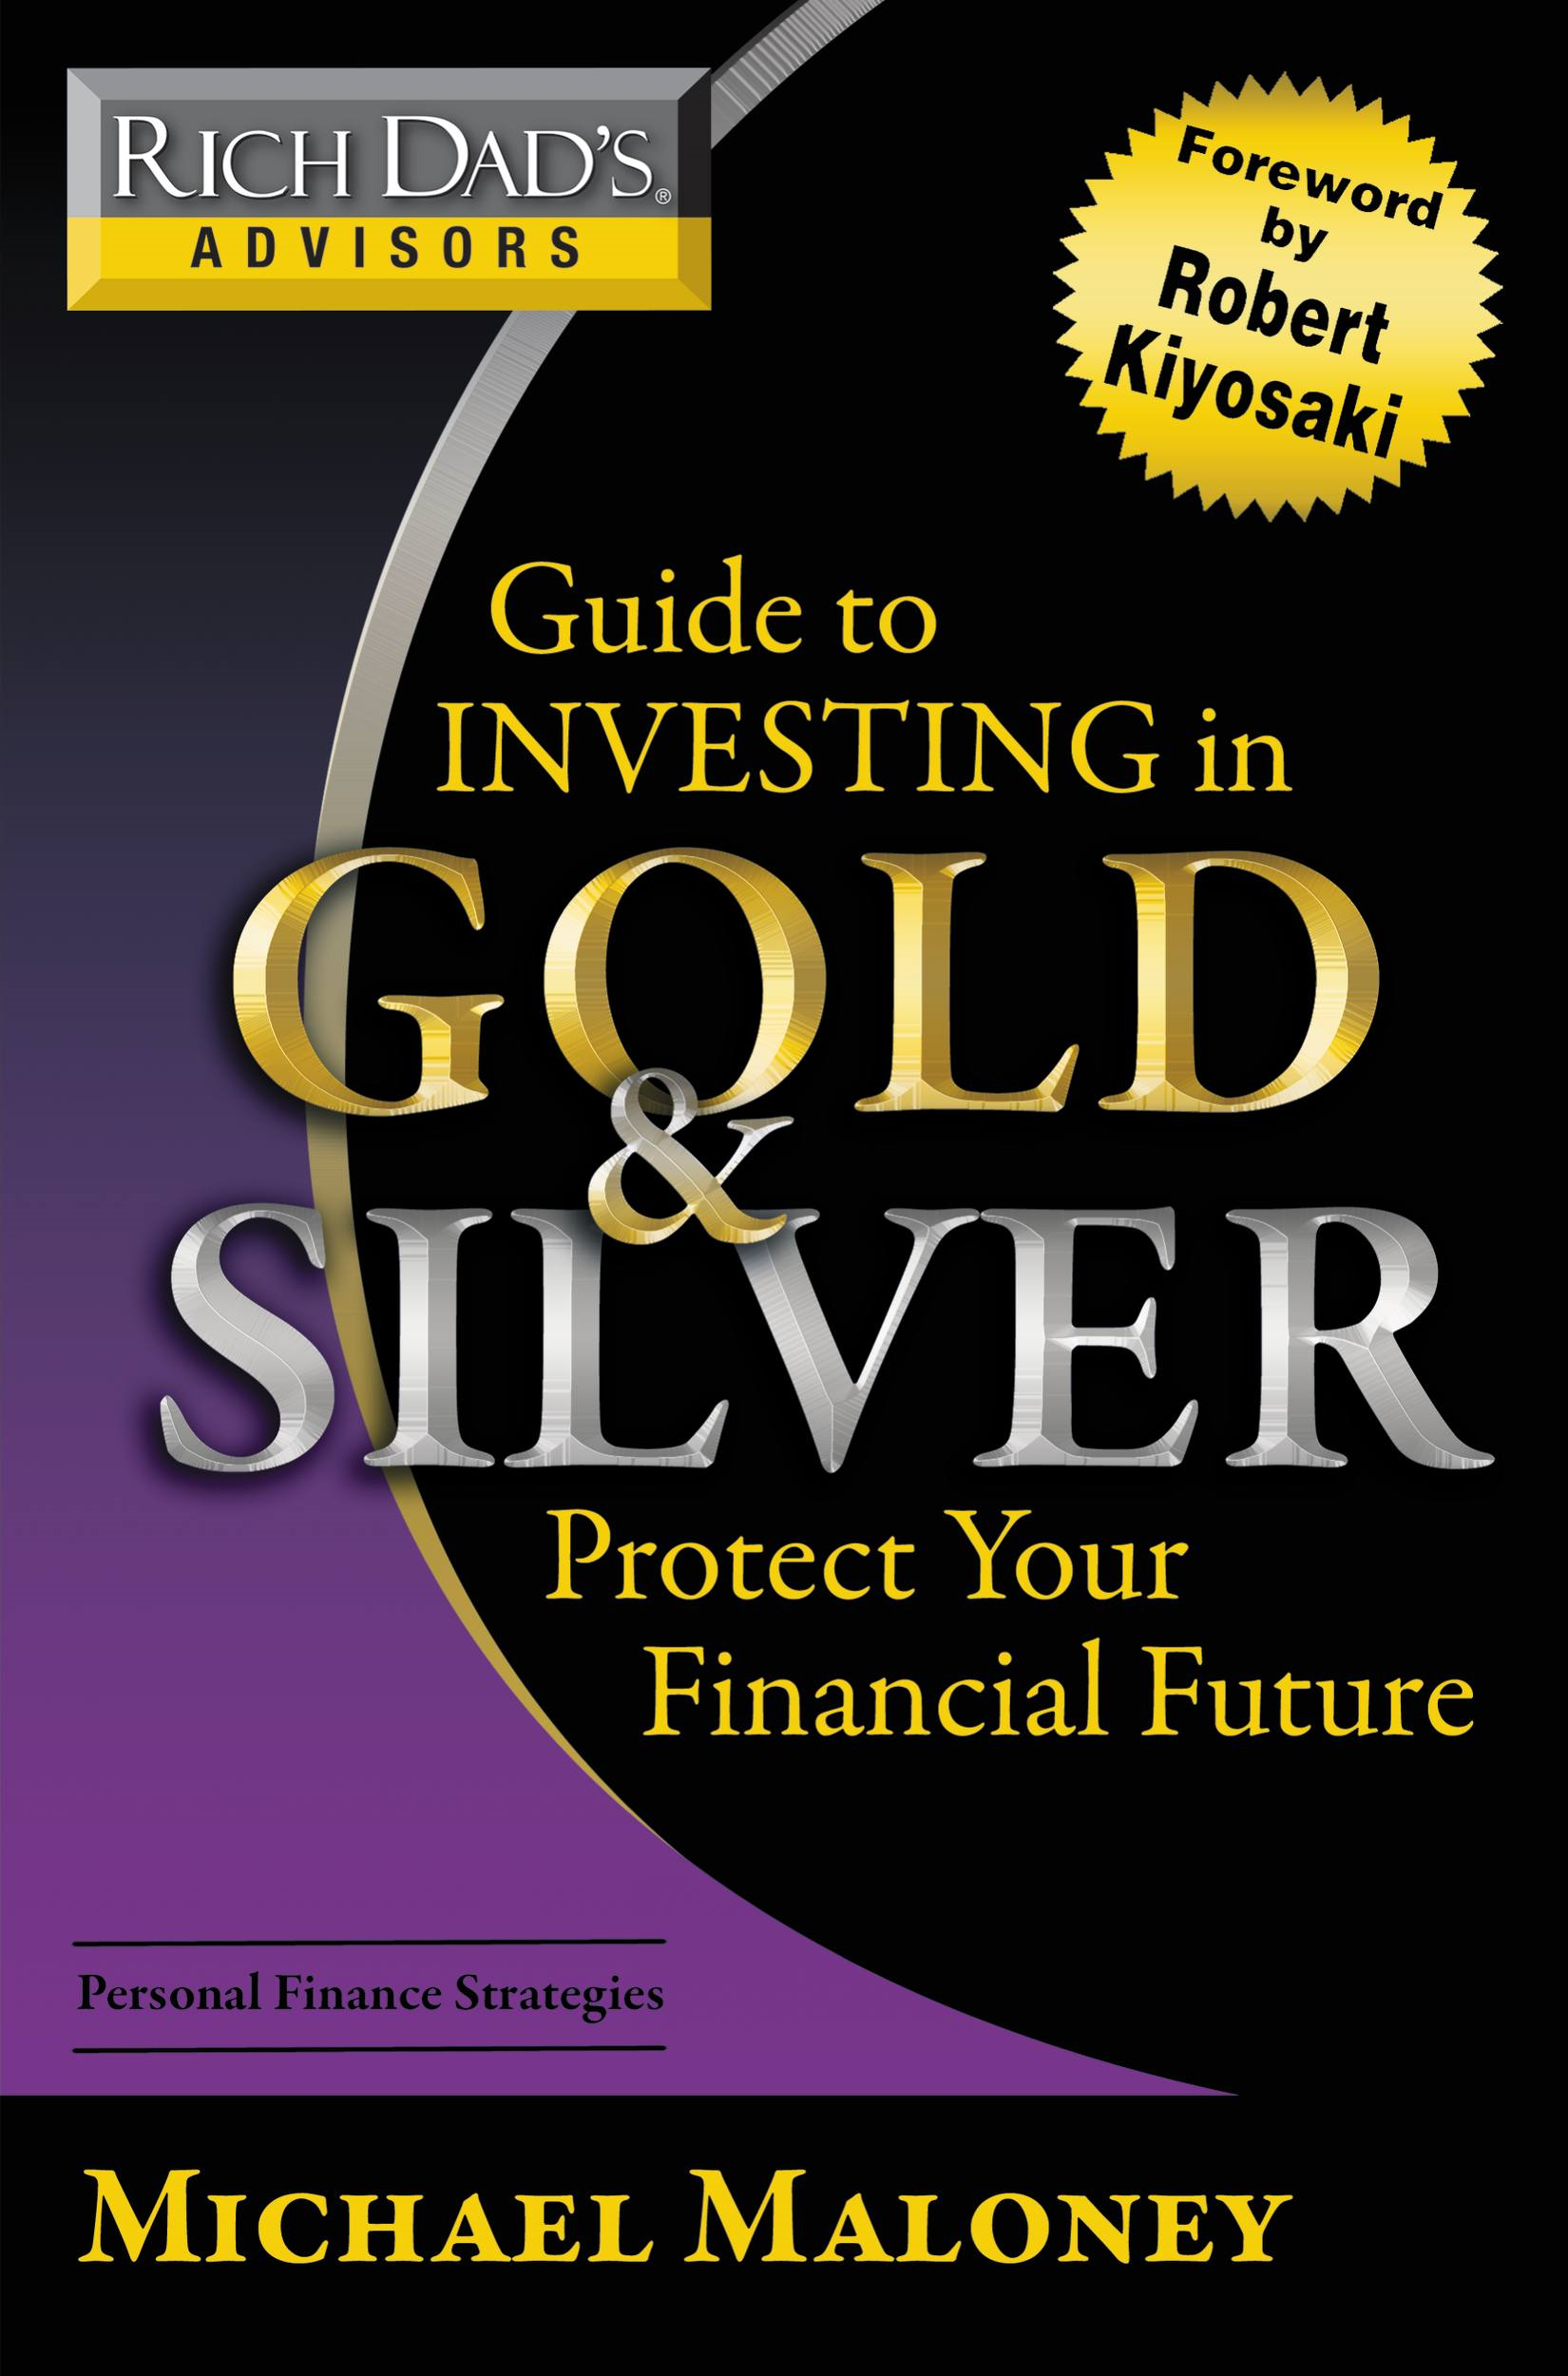 Rich Dad's Advisors: Guide to Investing In Gold and Silver By: Michael Maloney